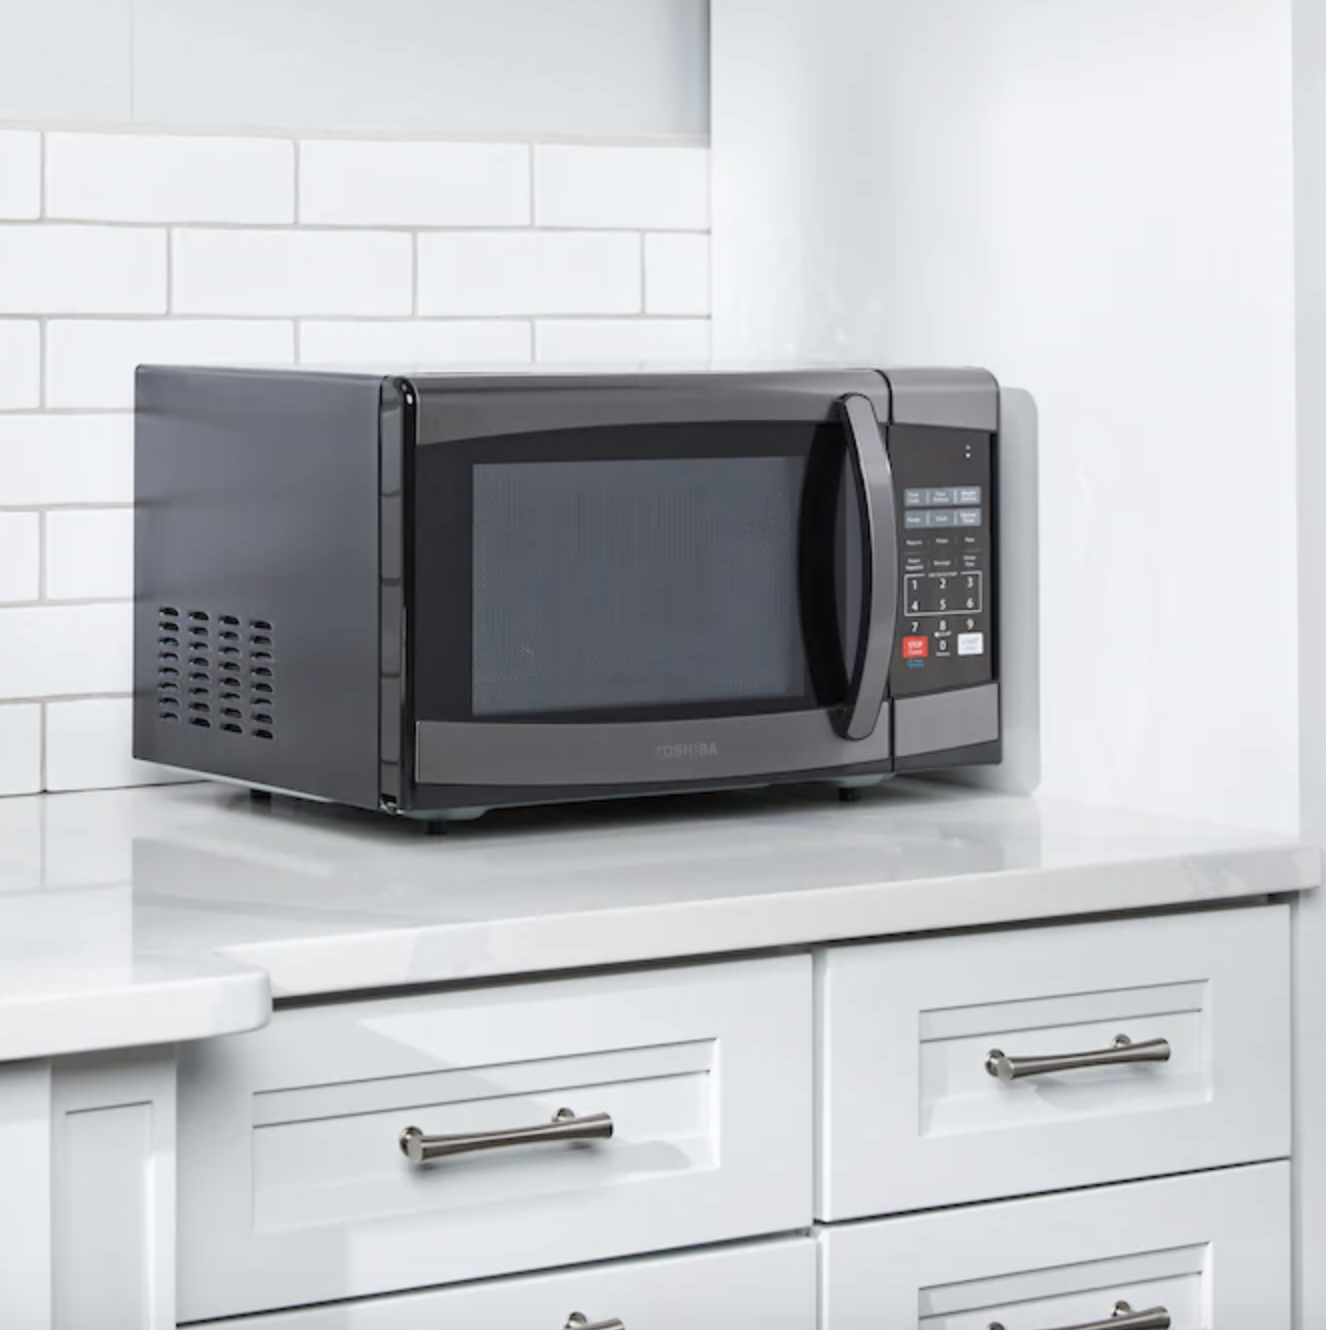 Microwave sitting on kitchen counter